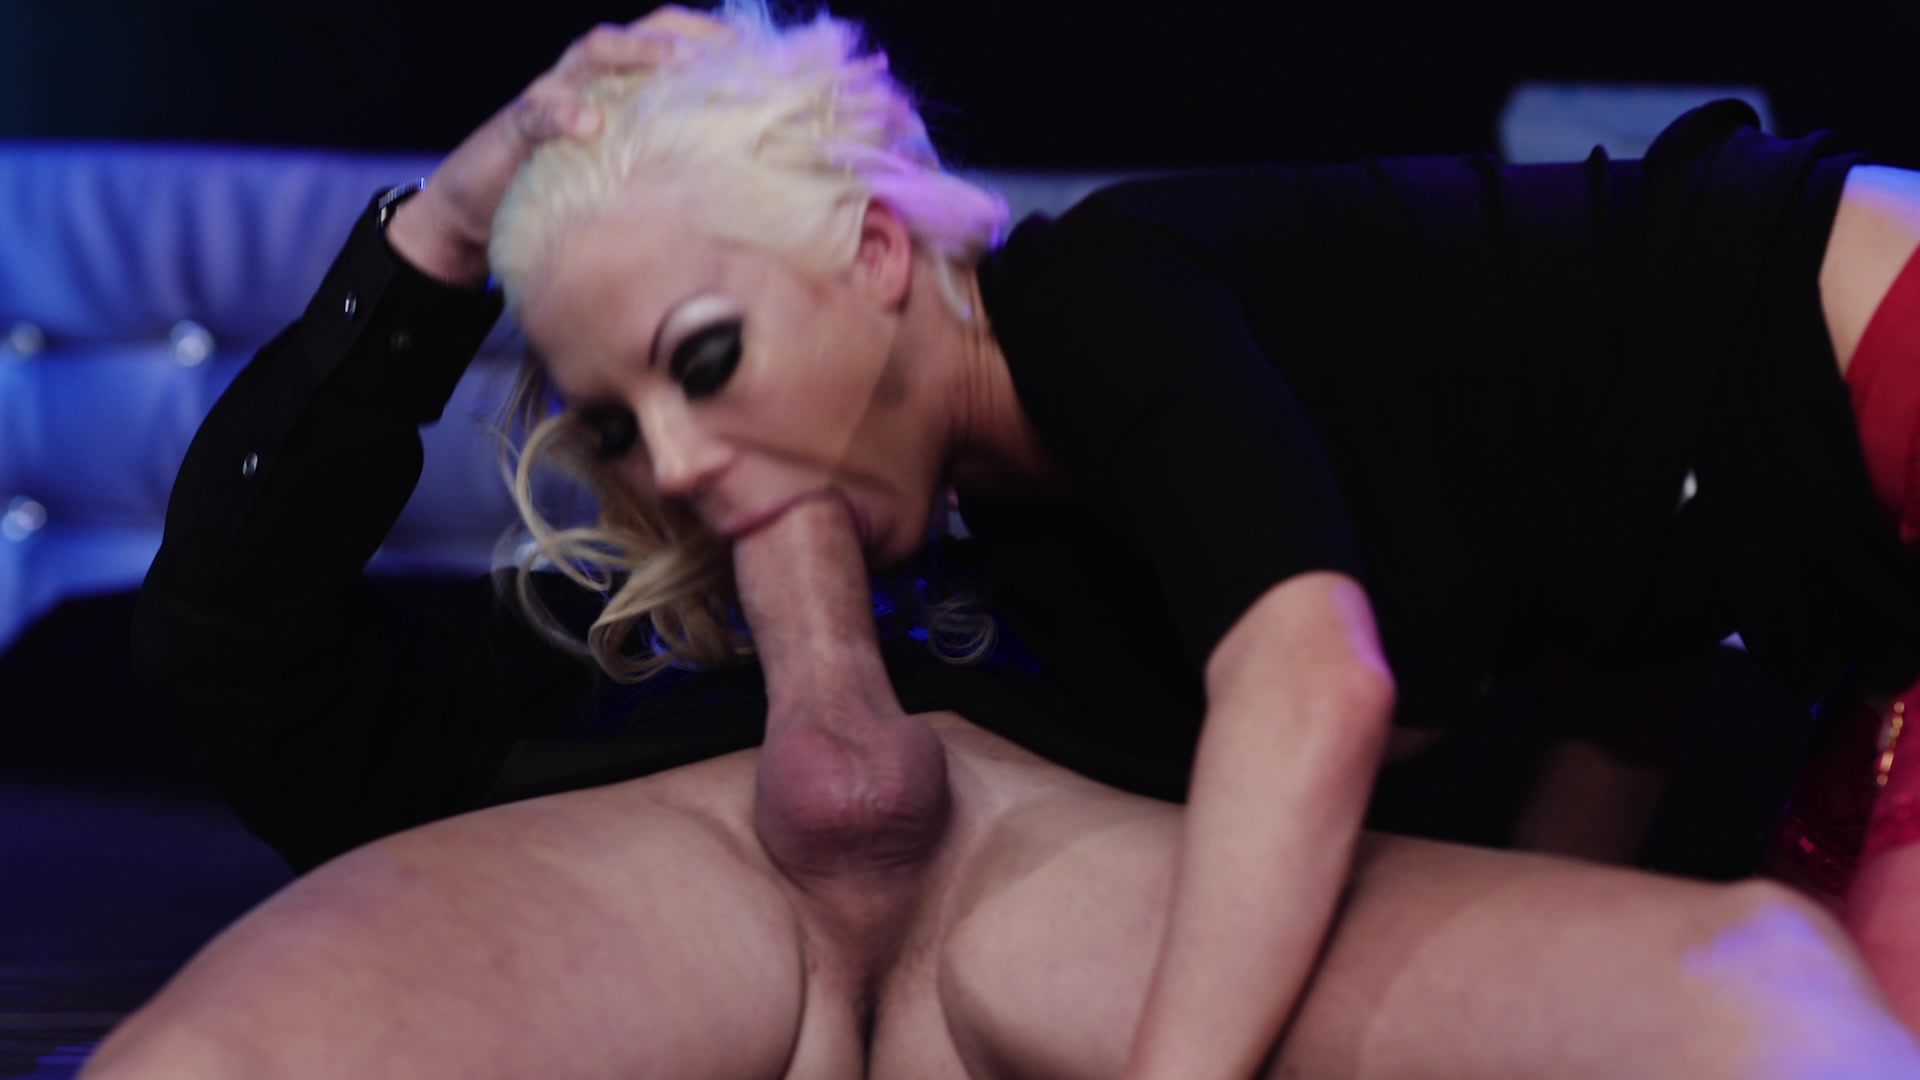 Very sensual blowjob